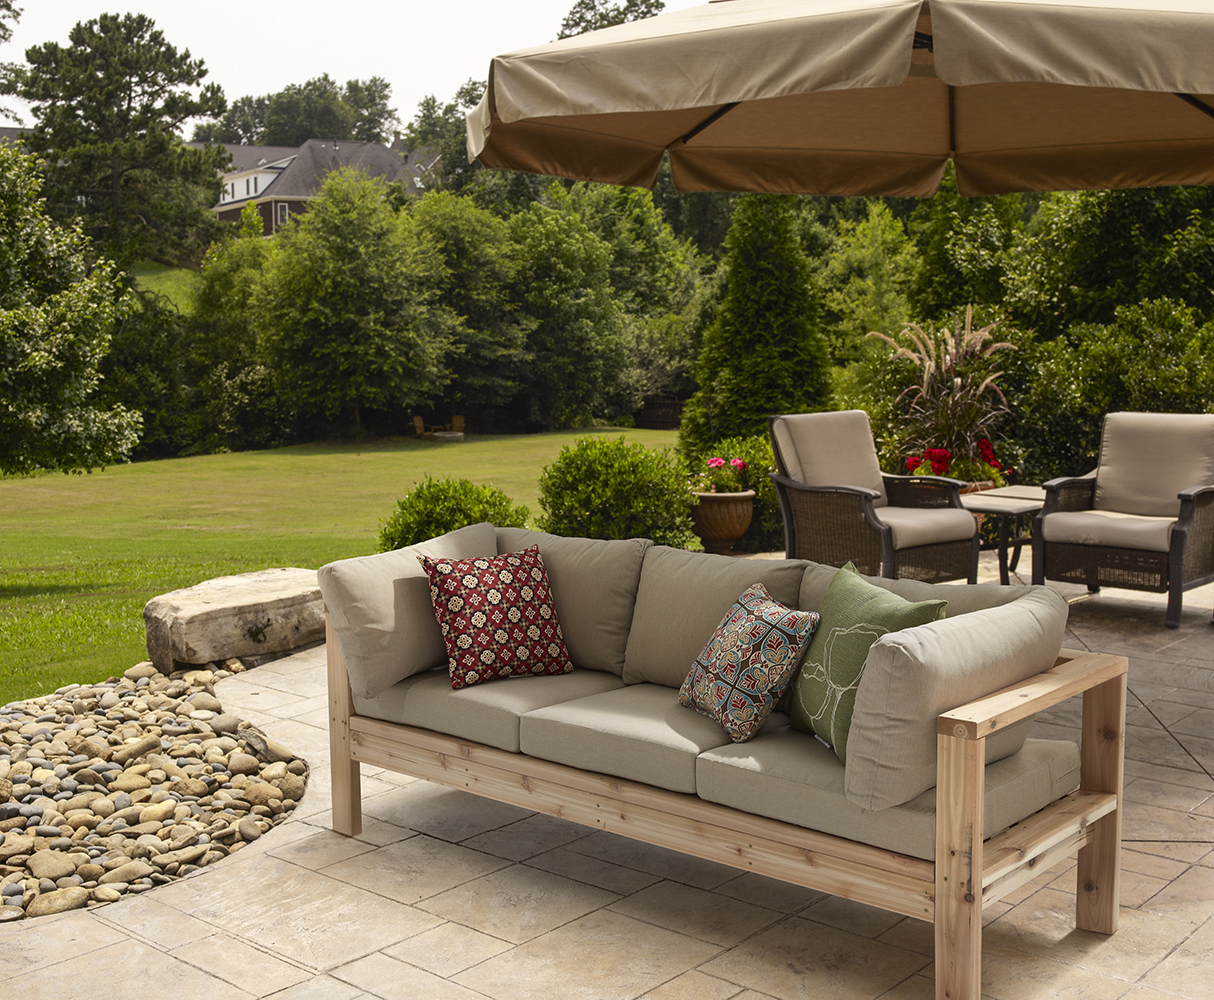 Bon Outdoor Couch   RYOBI Nation Projects